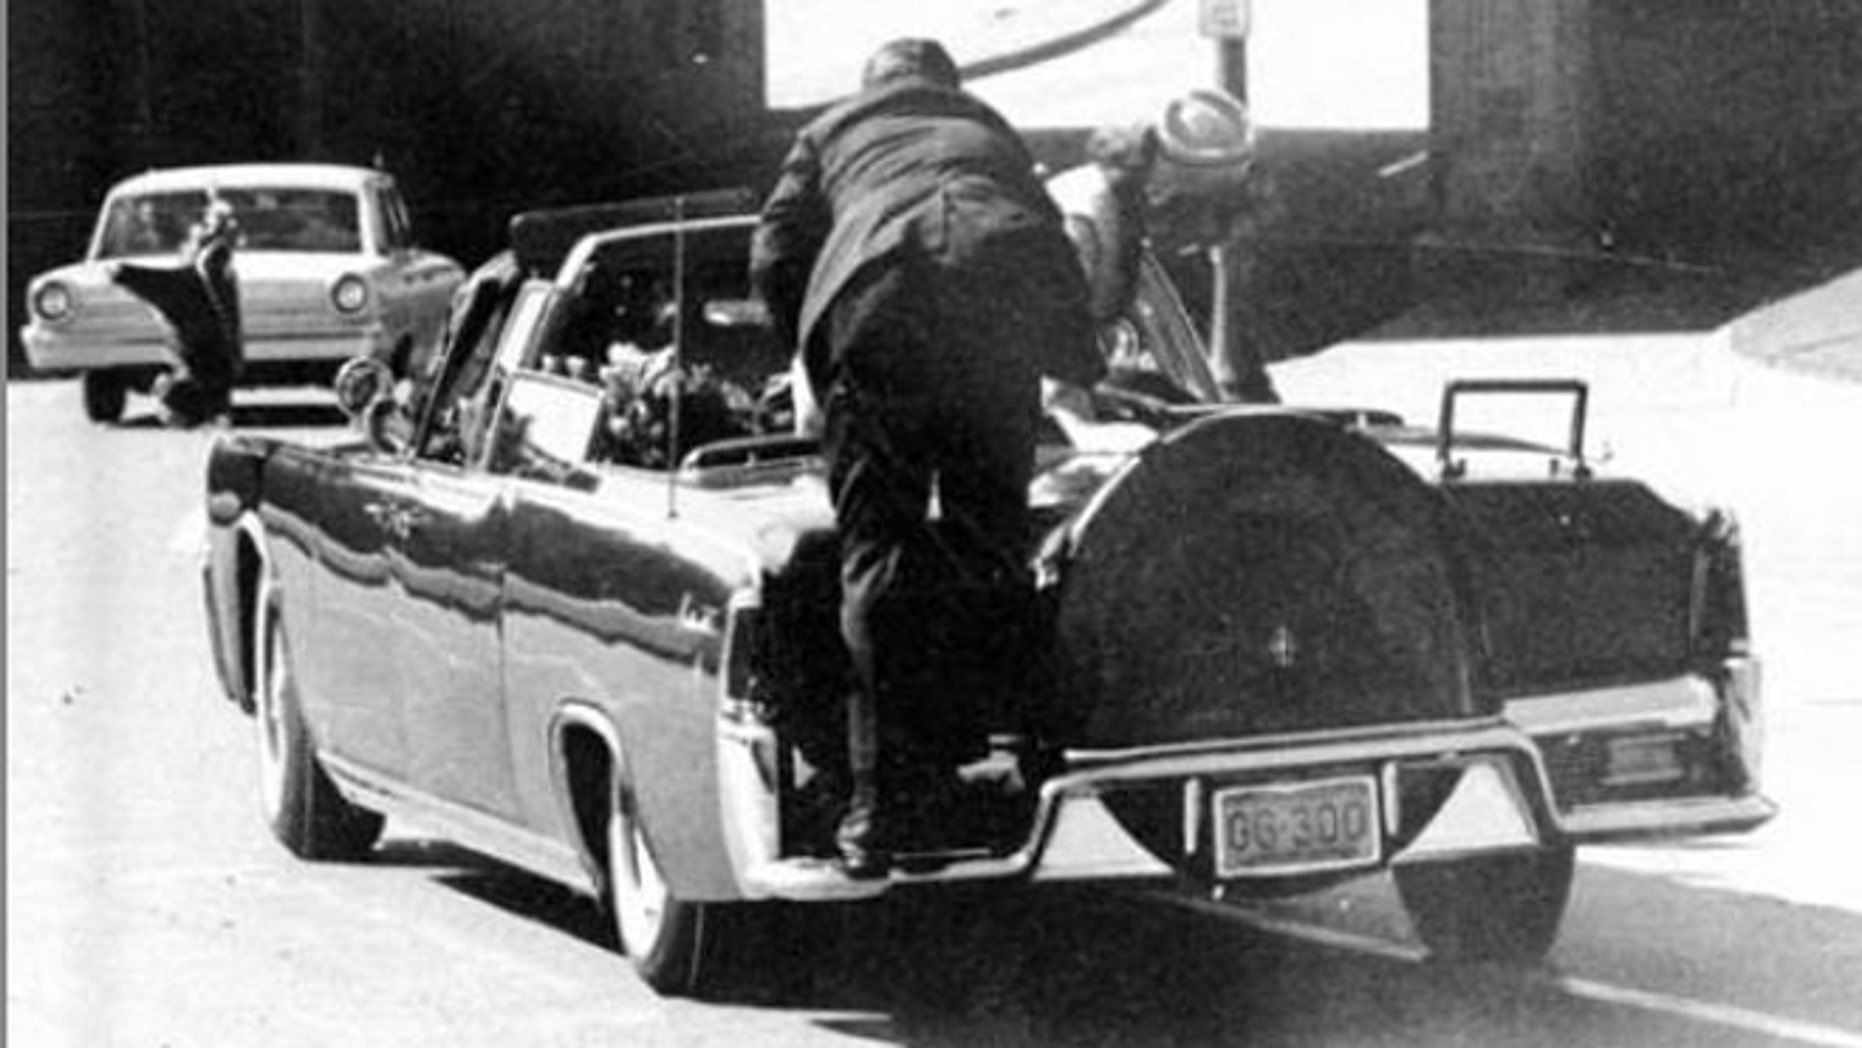 Nov. 22, 1963: President John F. Kennedy is slumped in the backseat of this car immediately after being shot in Dallas.